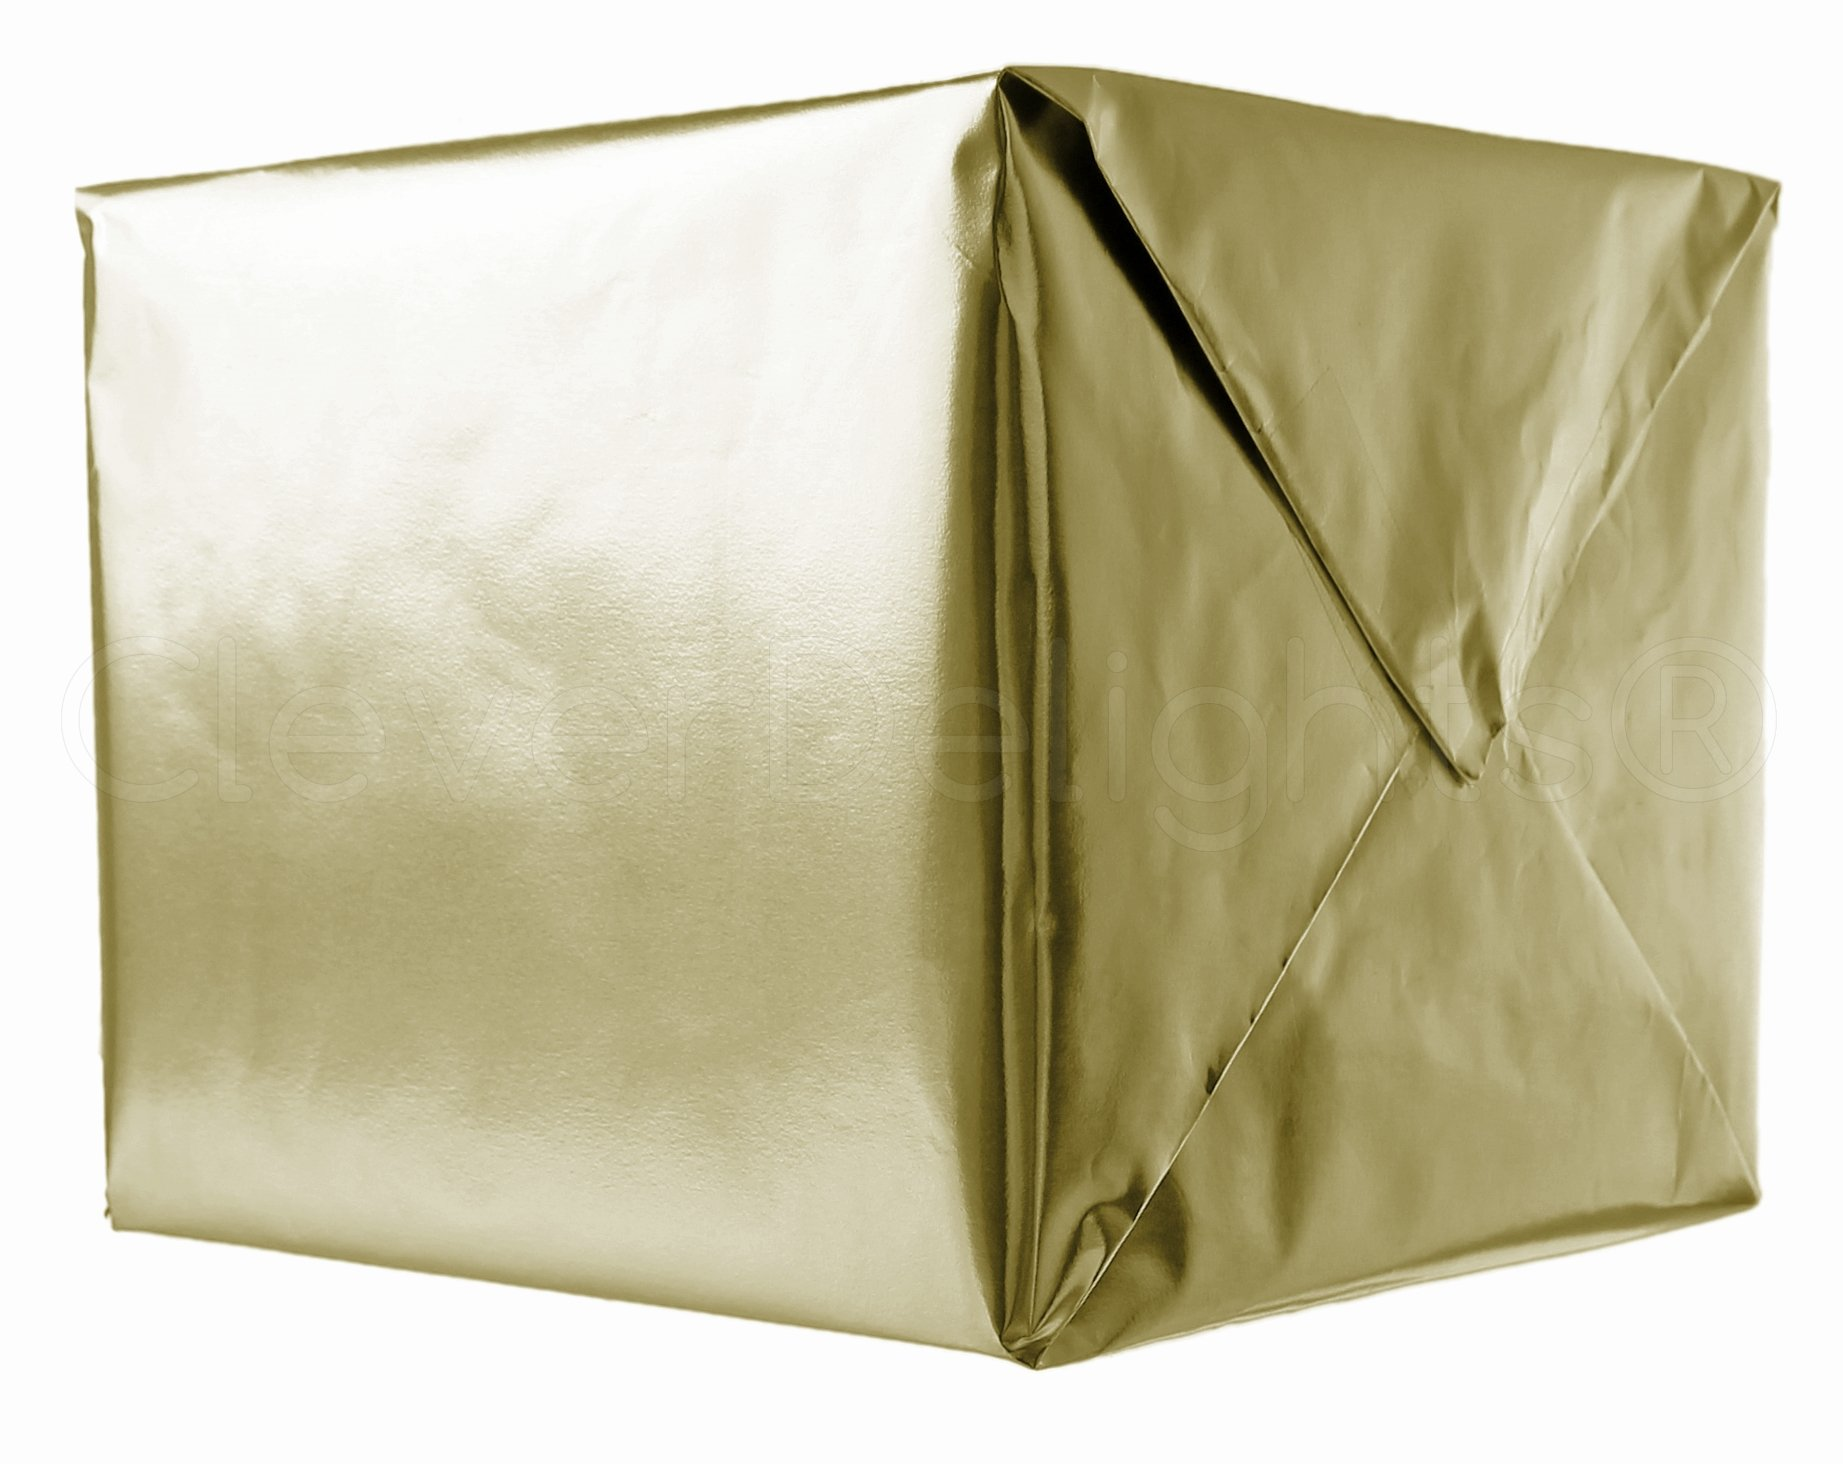 CleverDelights Metallic Gold Wrapping Paper - 30'' x 300'' JUMBO Roll - 62.5 Sq Ft - Shiny Gift Wrap Paper